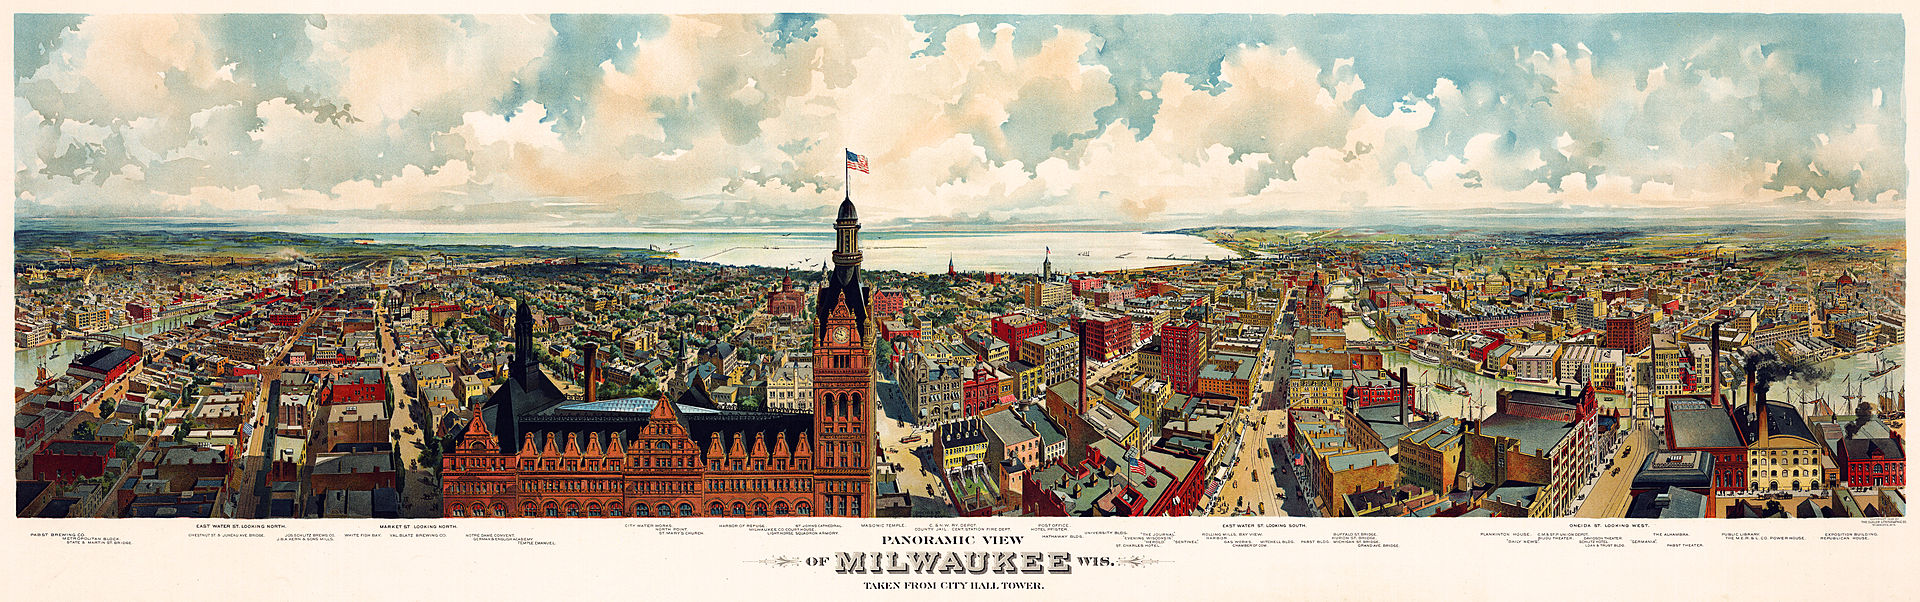 Milwaukee-1898